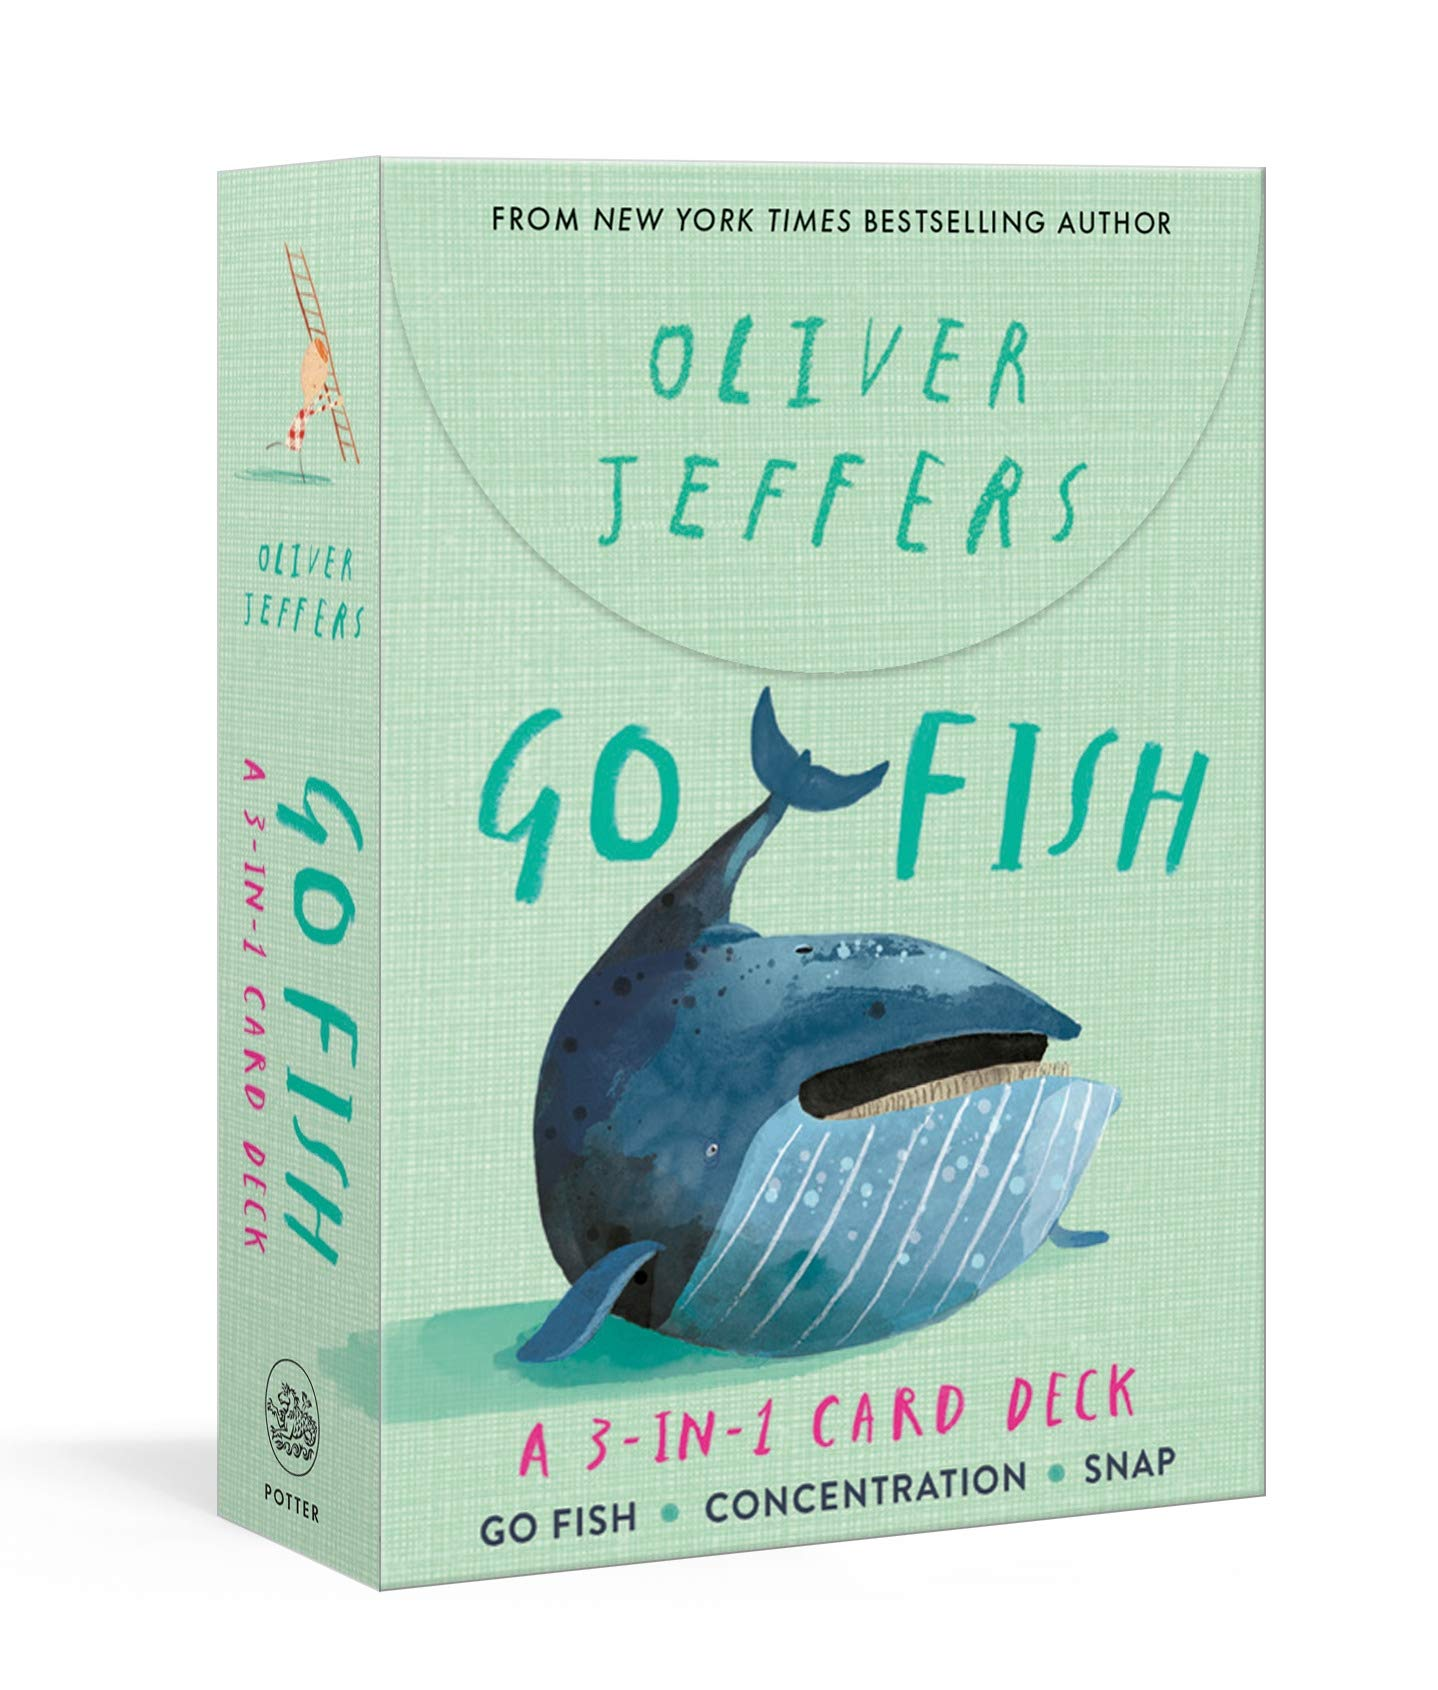 Download Go Fish: A 3-In-1 Card Deck Go Fish, Concentration, Snap 